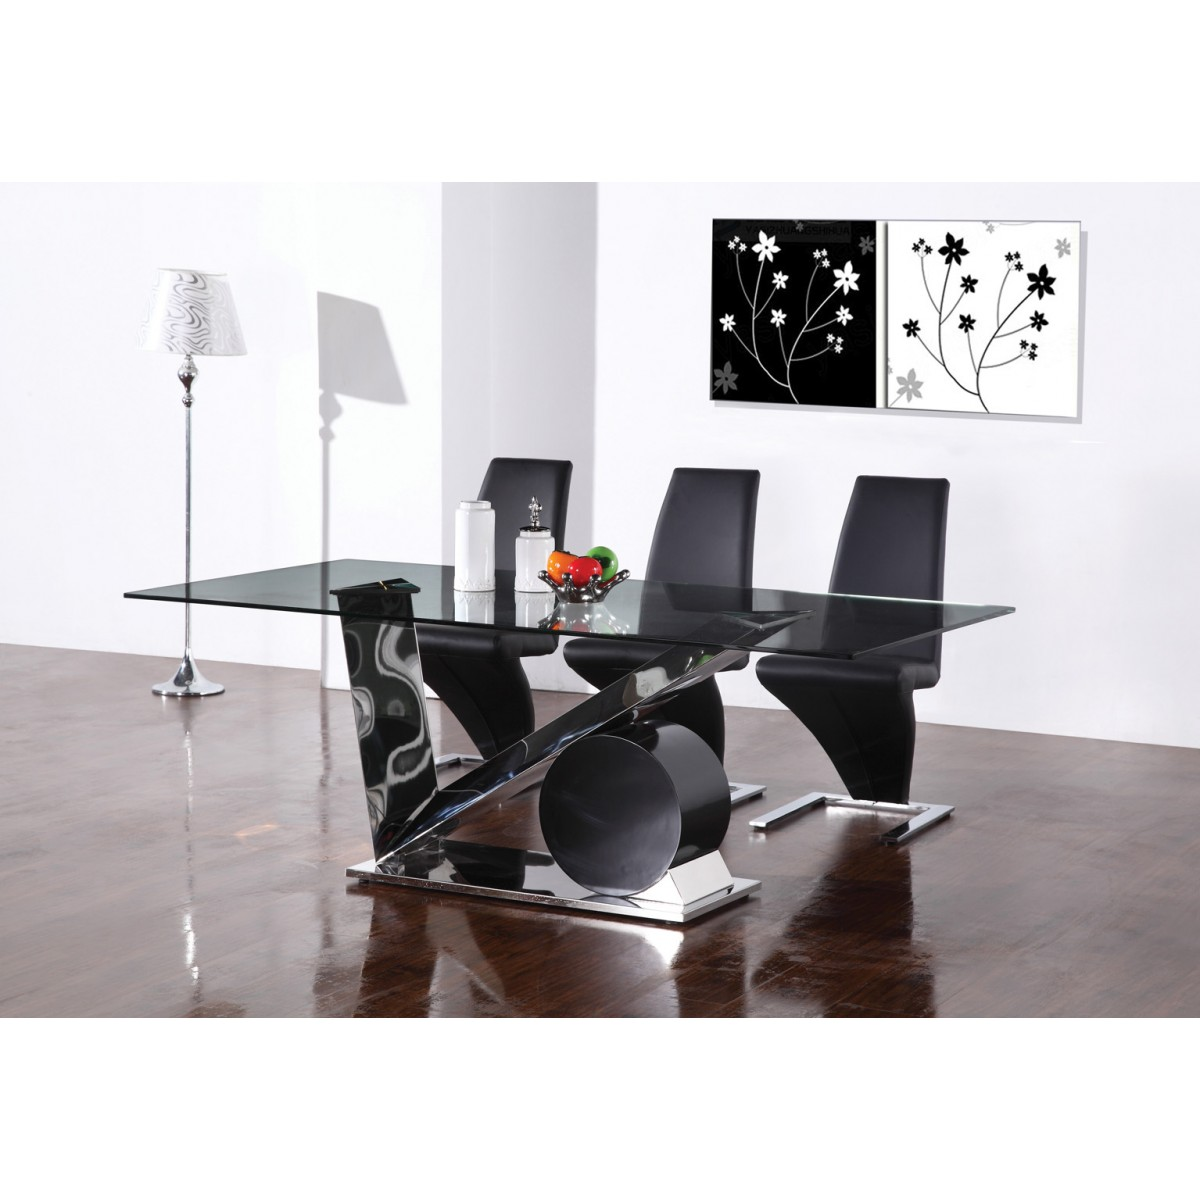 Formidable set de table pour table en verre 4 table for Salle a manger table en verre